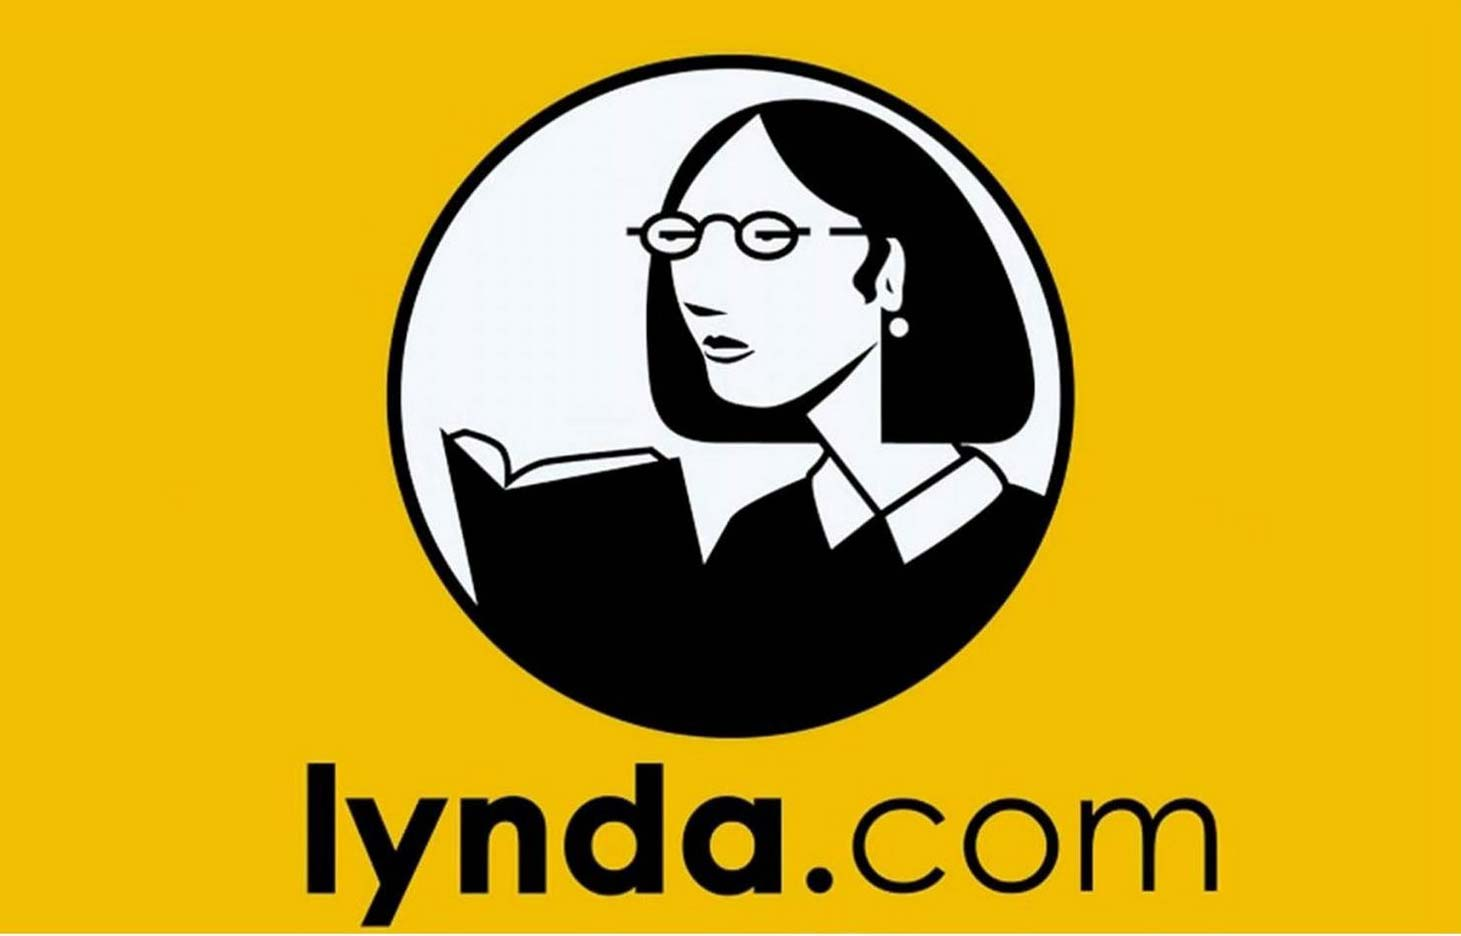 Image result for lynda.com logo